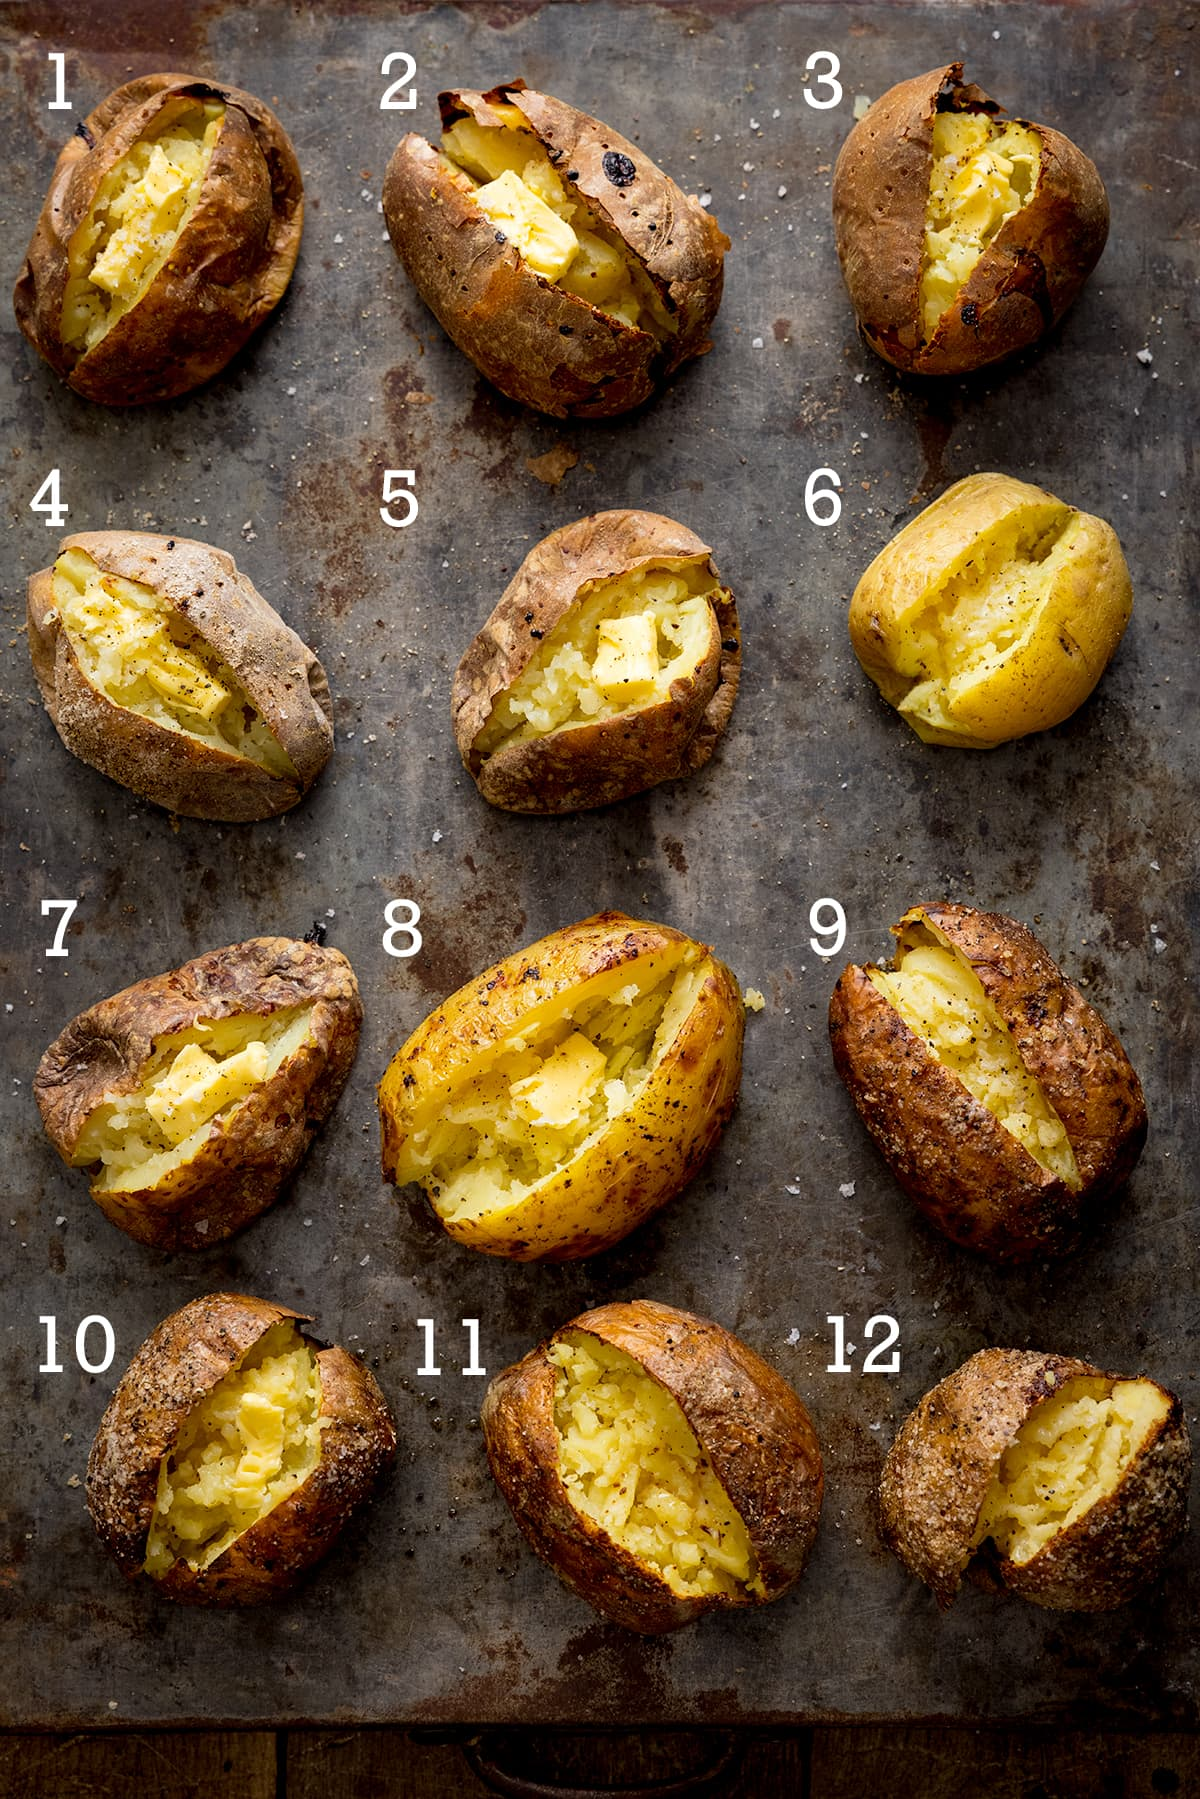 12 open baked potatoes on a metal tray - each with a number from one to ten.